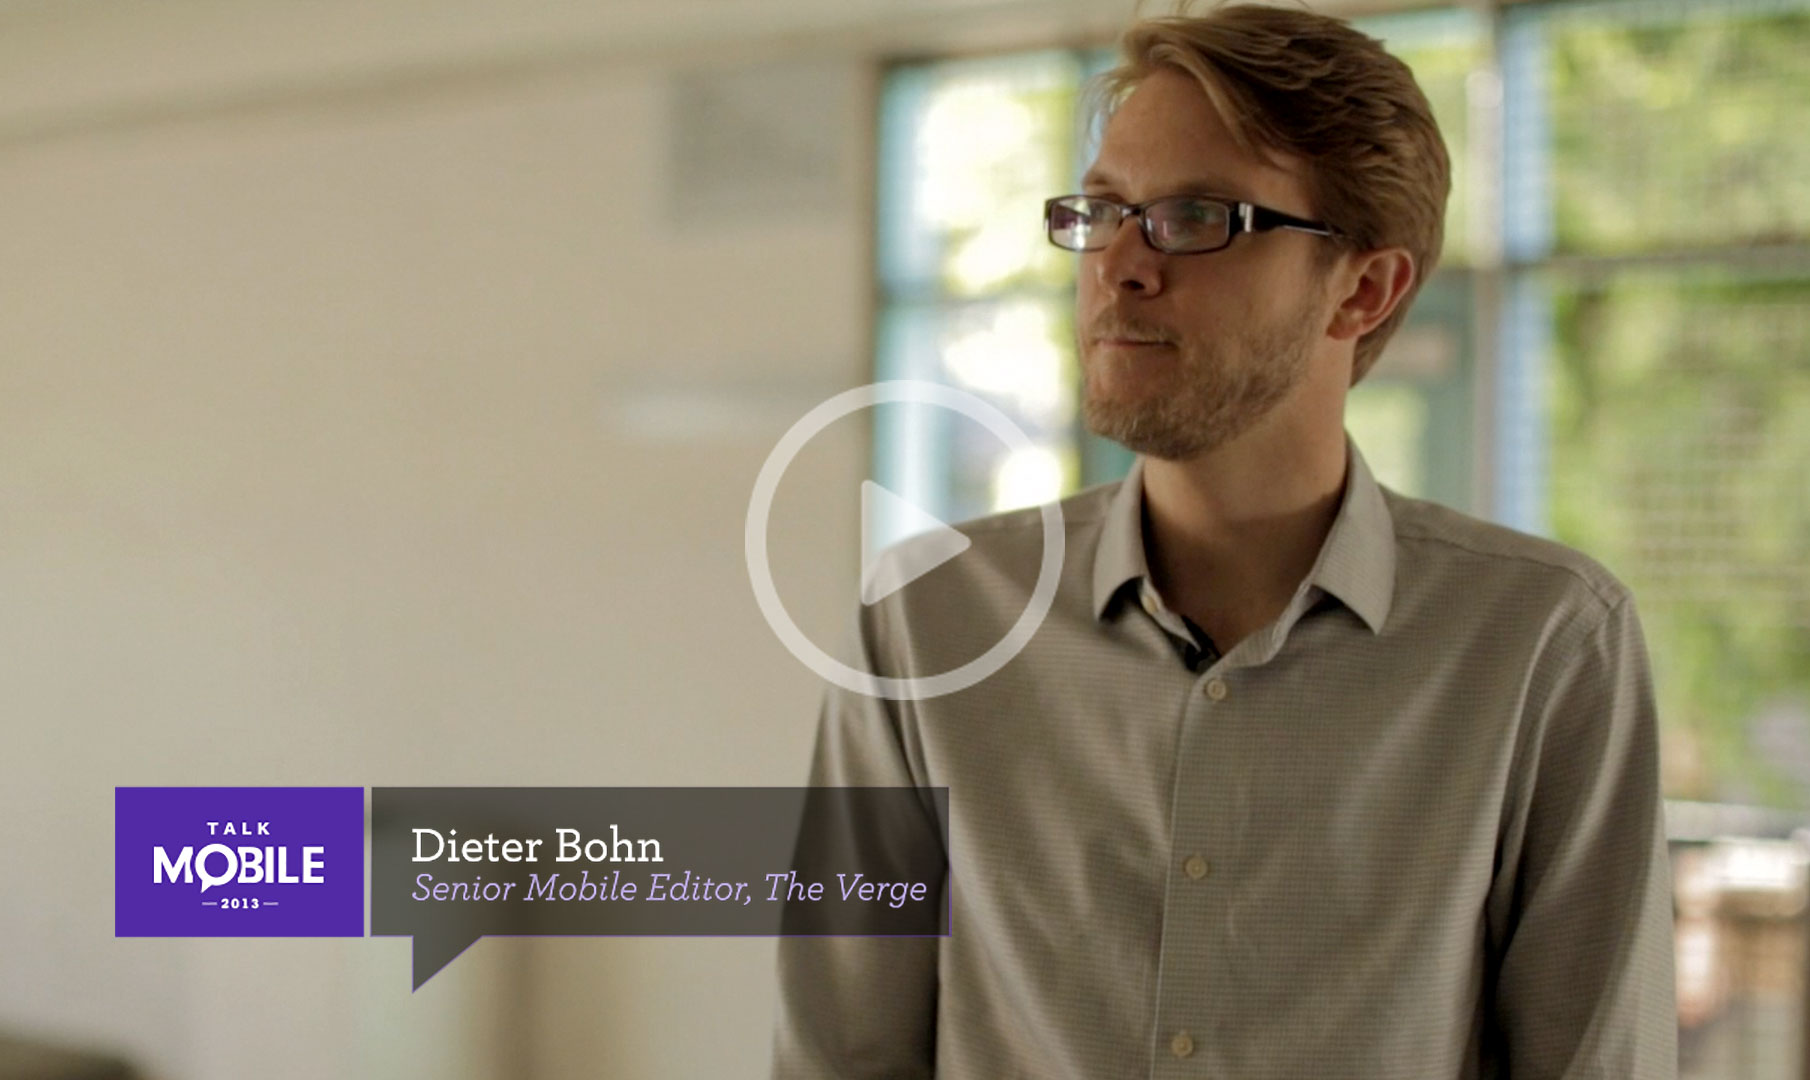 Watch Dieter Bohn talk about the future of mobile... and brain implants